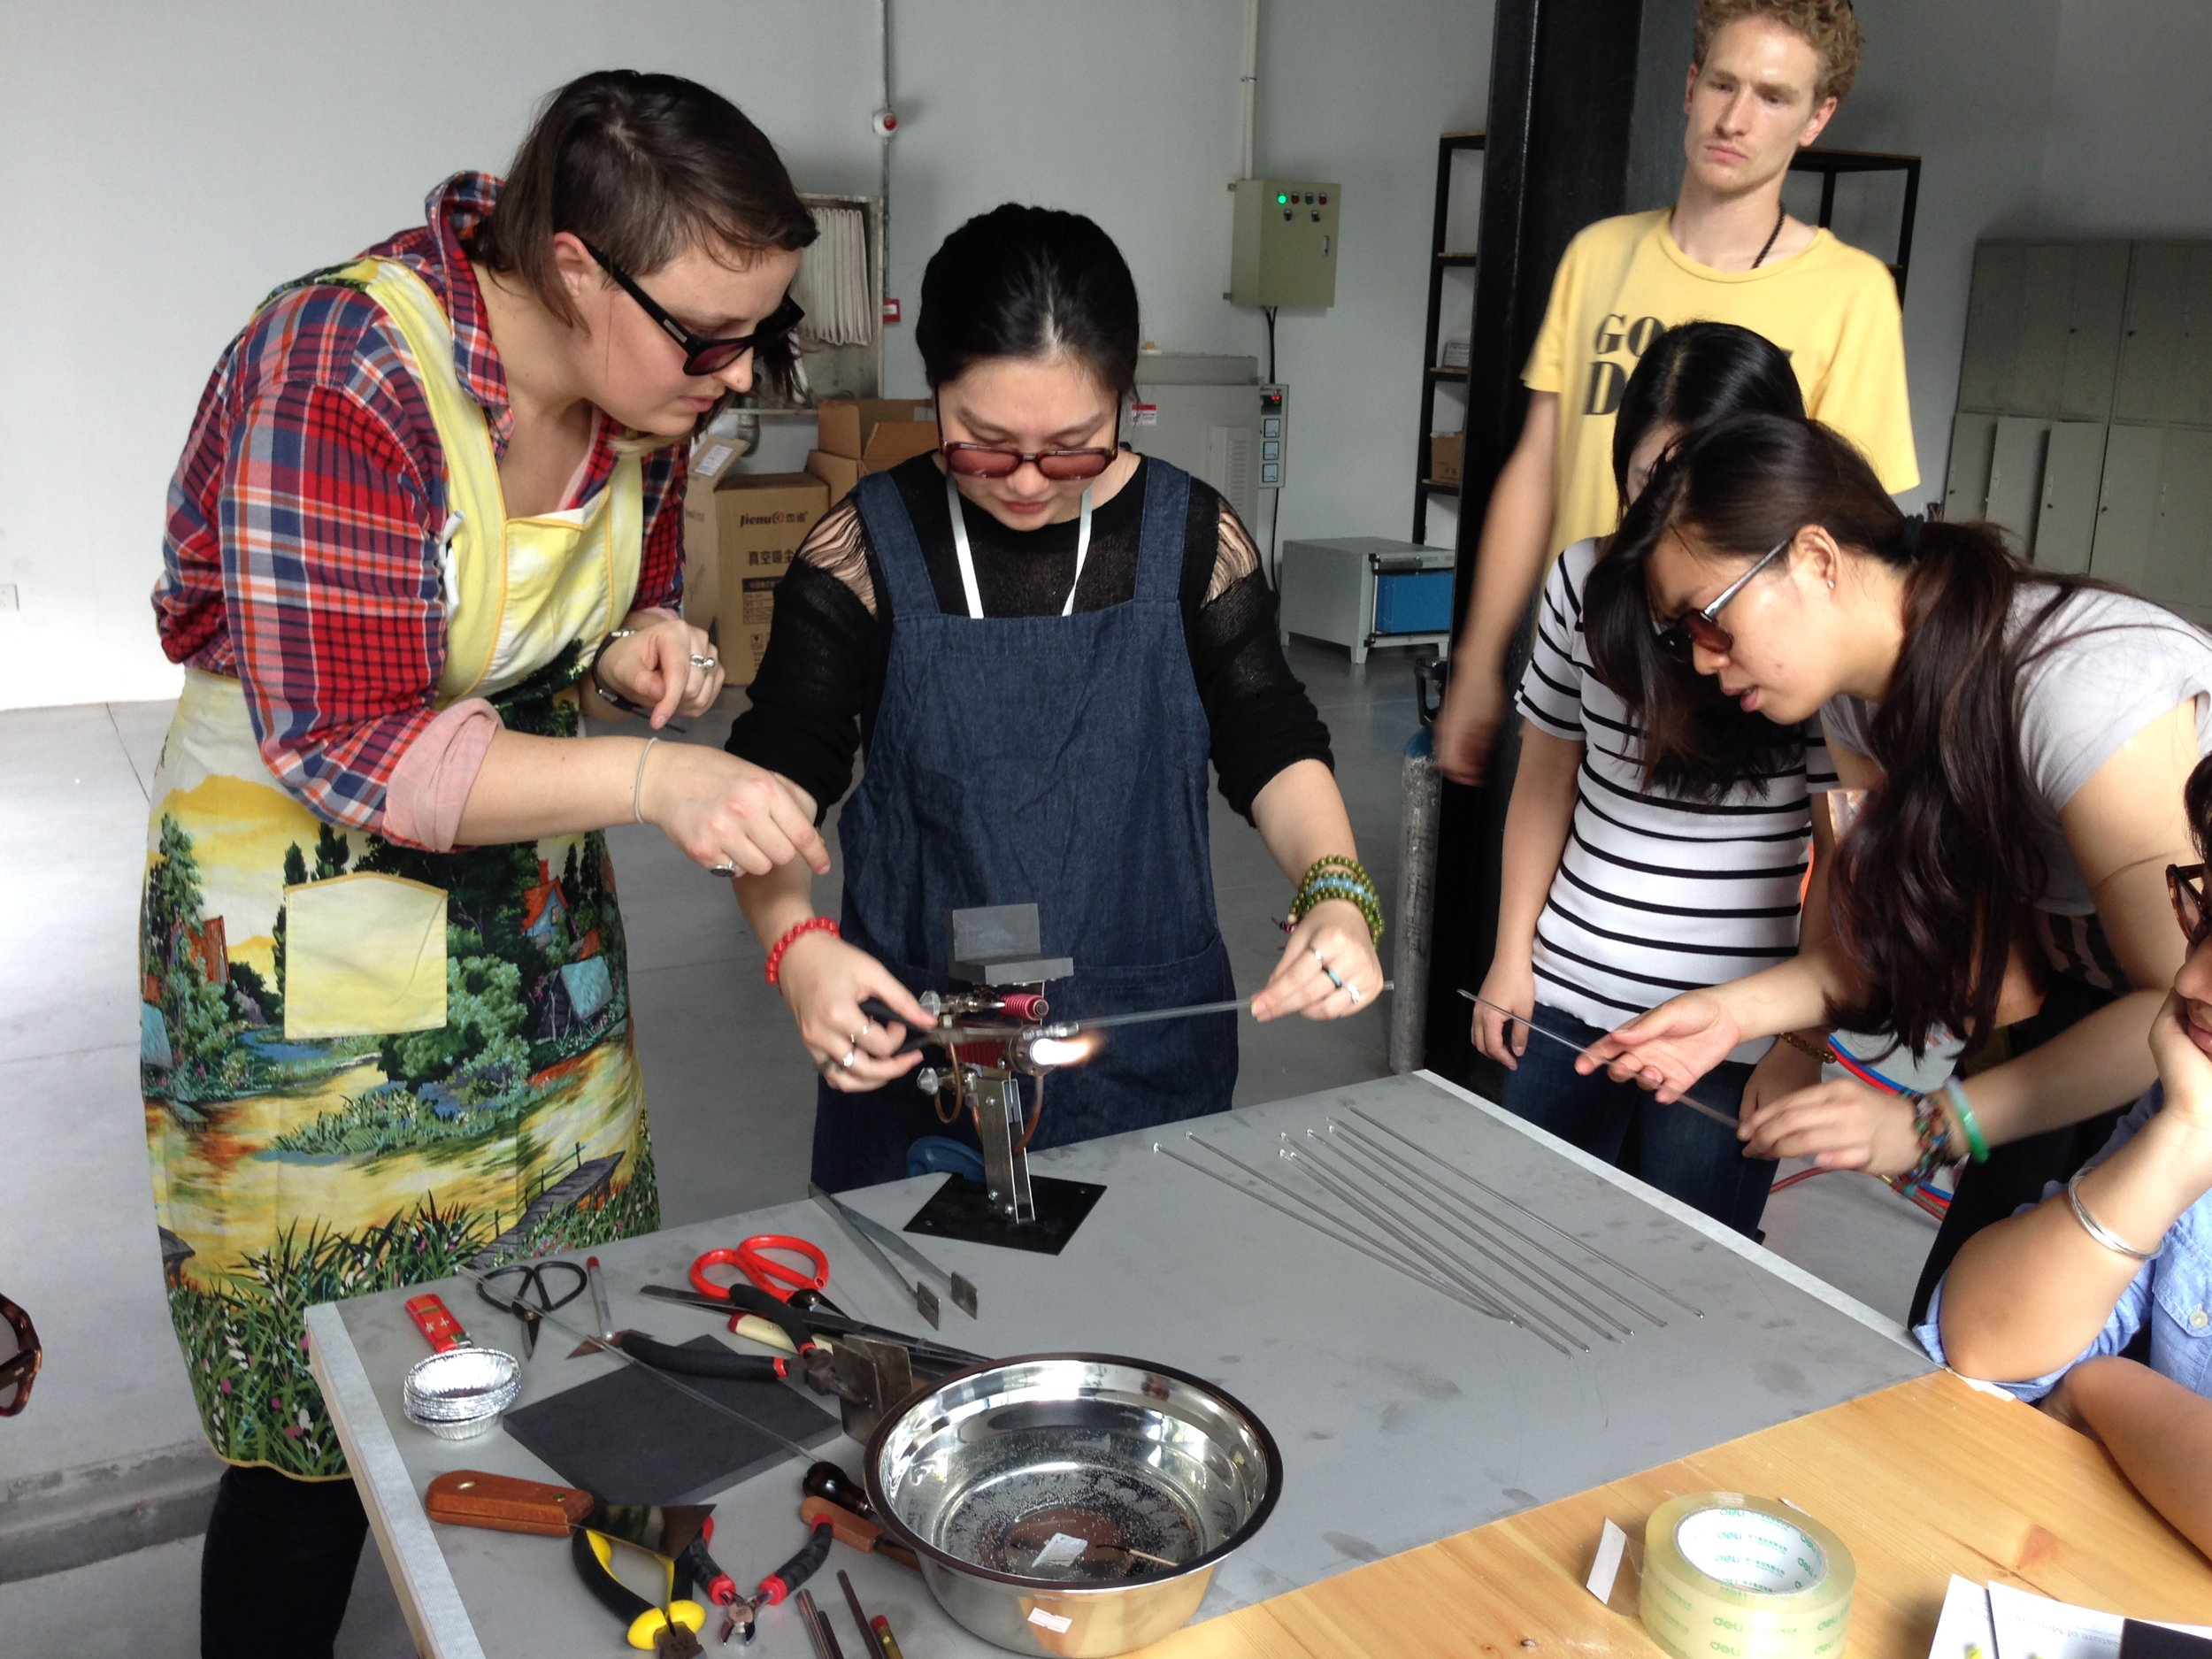 Jess Dare teaching students how to use a flame to manipulate glass at San W Studio